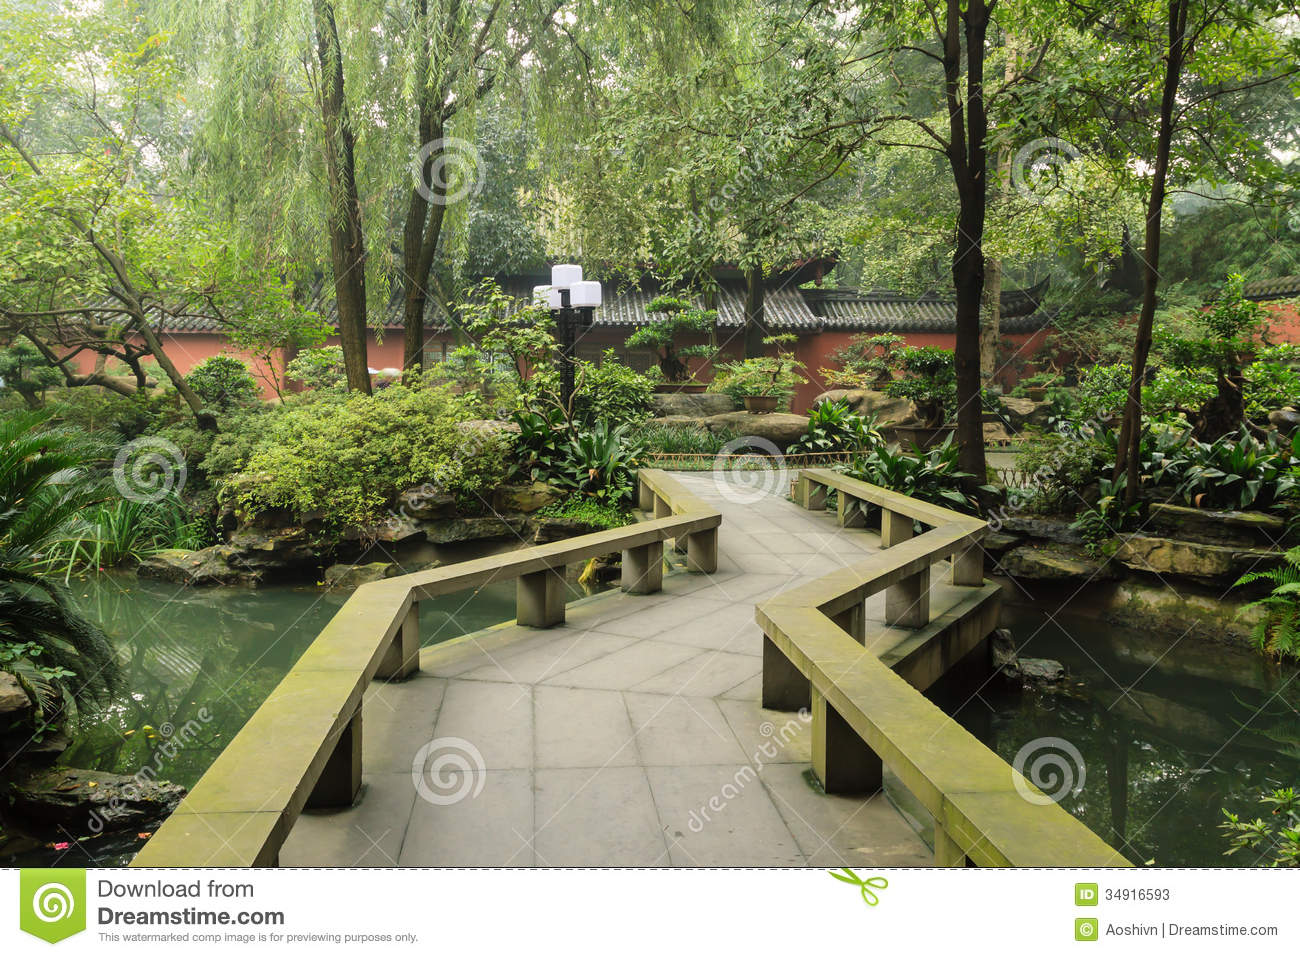 Chinese garden stock photos image 34916593 for Outdoor landscaping